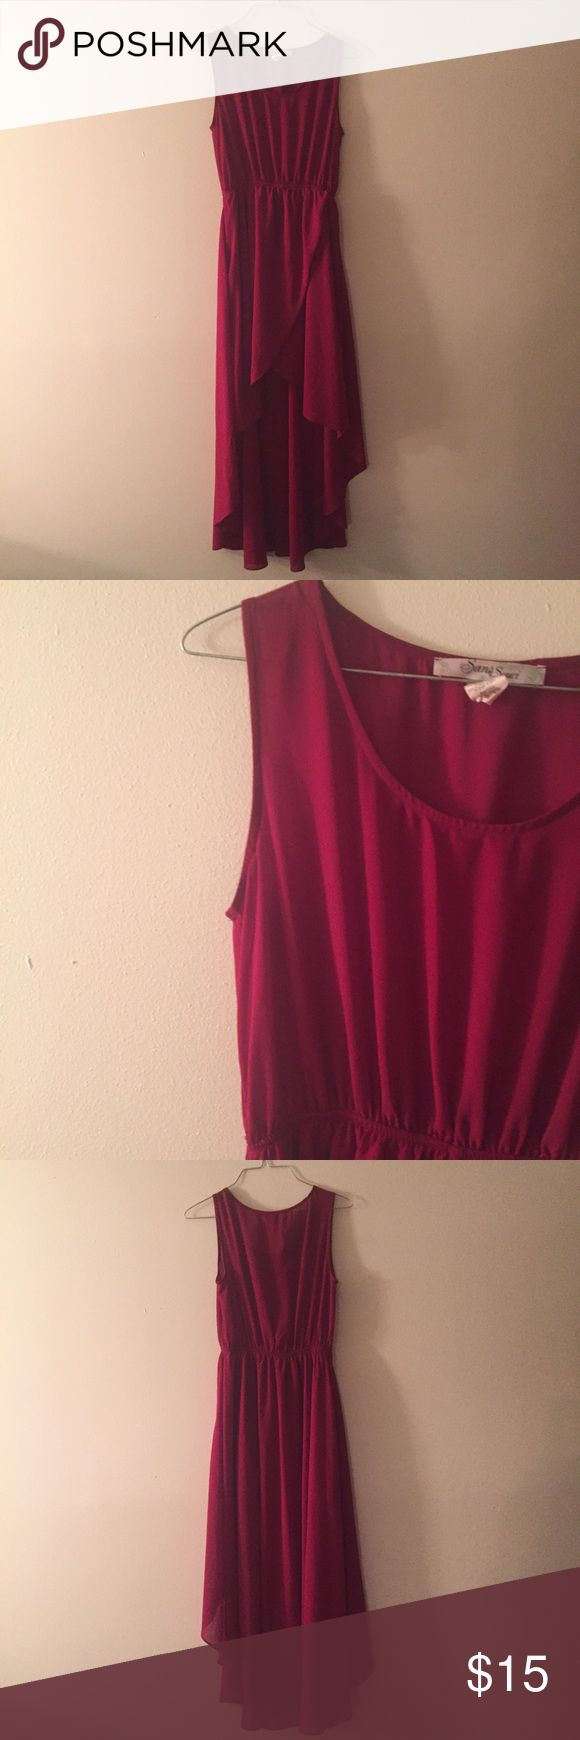 EUC ruby red sheer hi low maxi dress Super cute an in great condition ruby red Sans Souci high low sheer max dress. Worn and washed a few times this past summer. Perfect for any occasion with a pair of strappy sandals and a statement necklace Sans Souci Dresses High Low